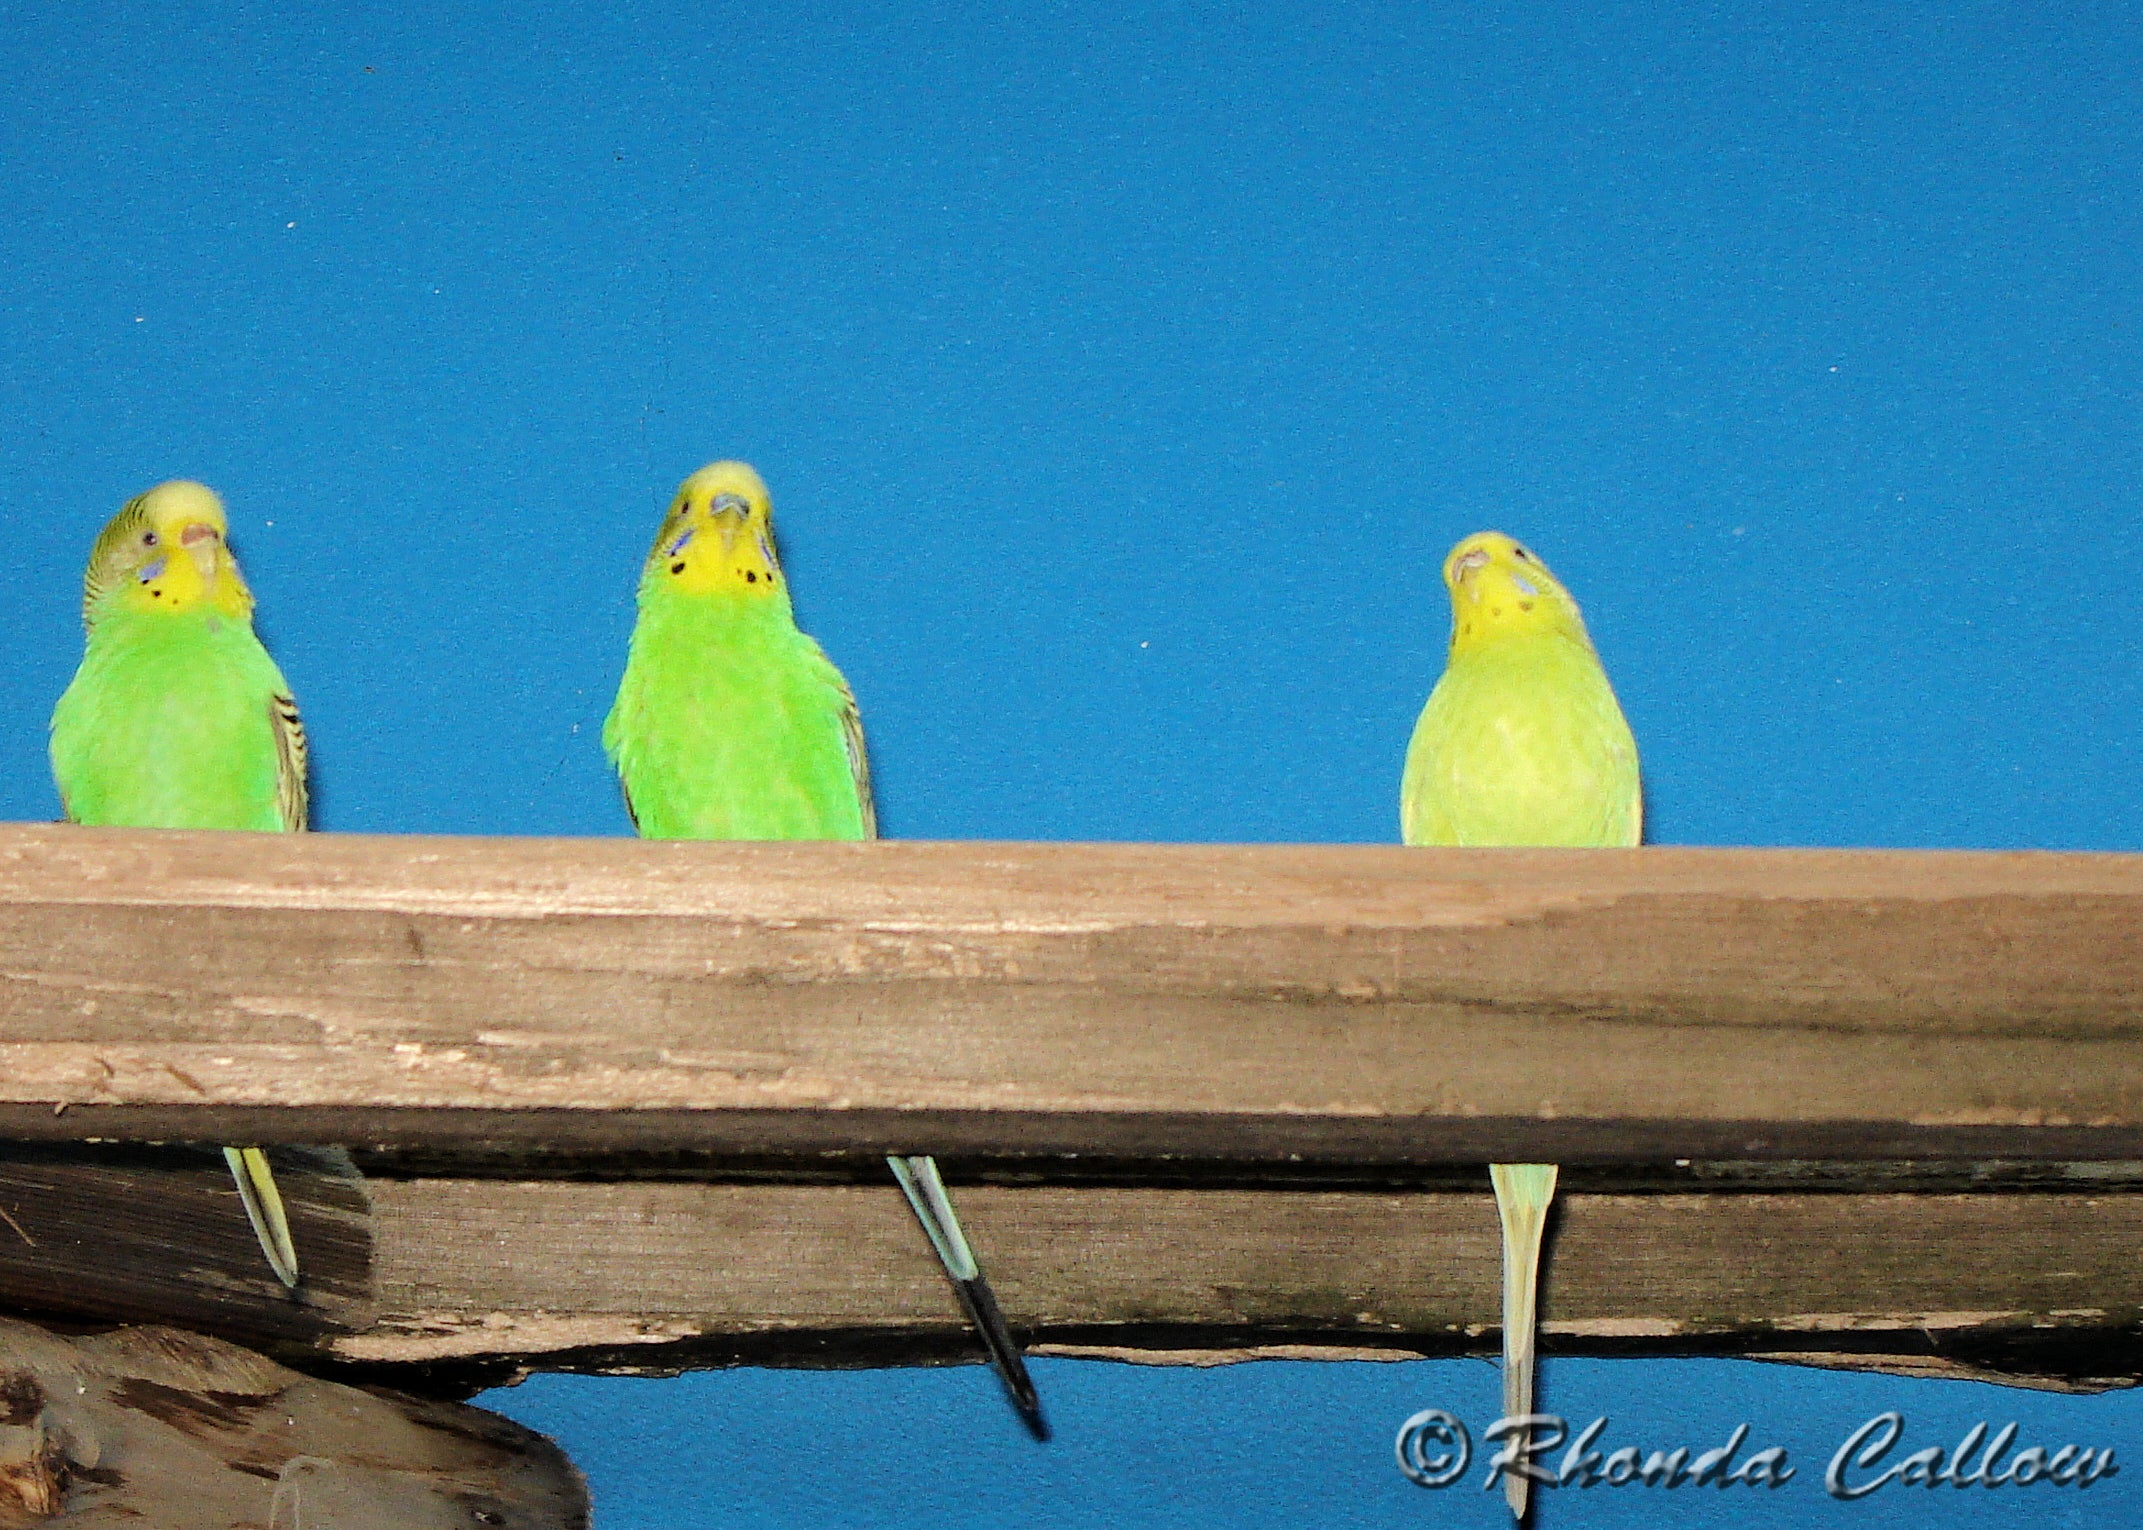 Three bright green budgie birds with a blue background